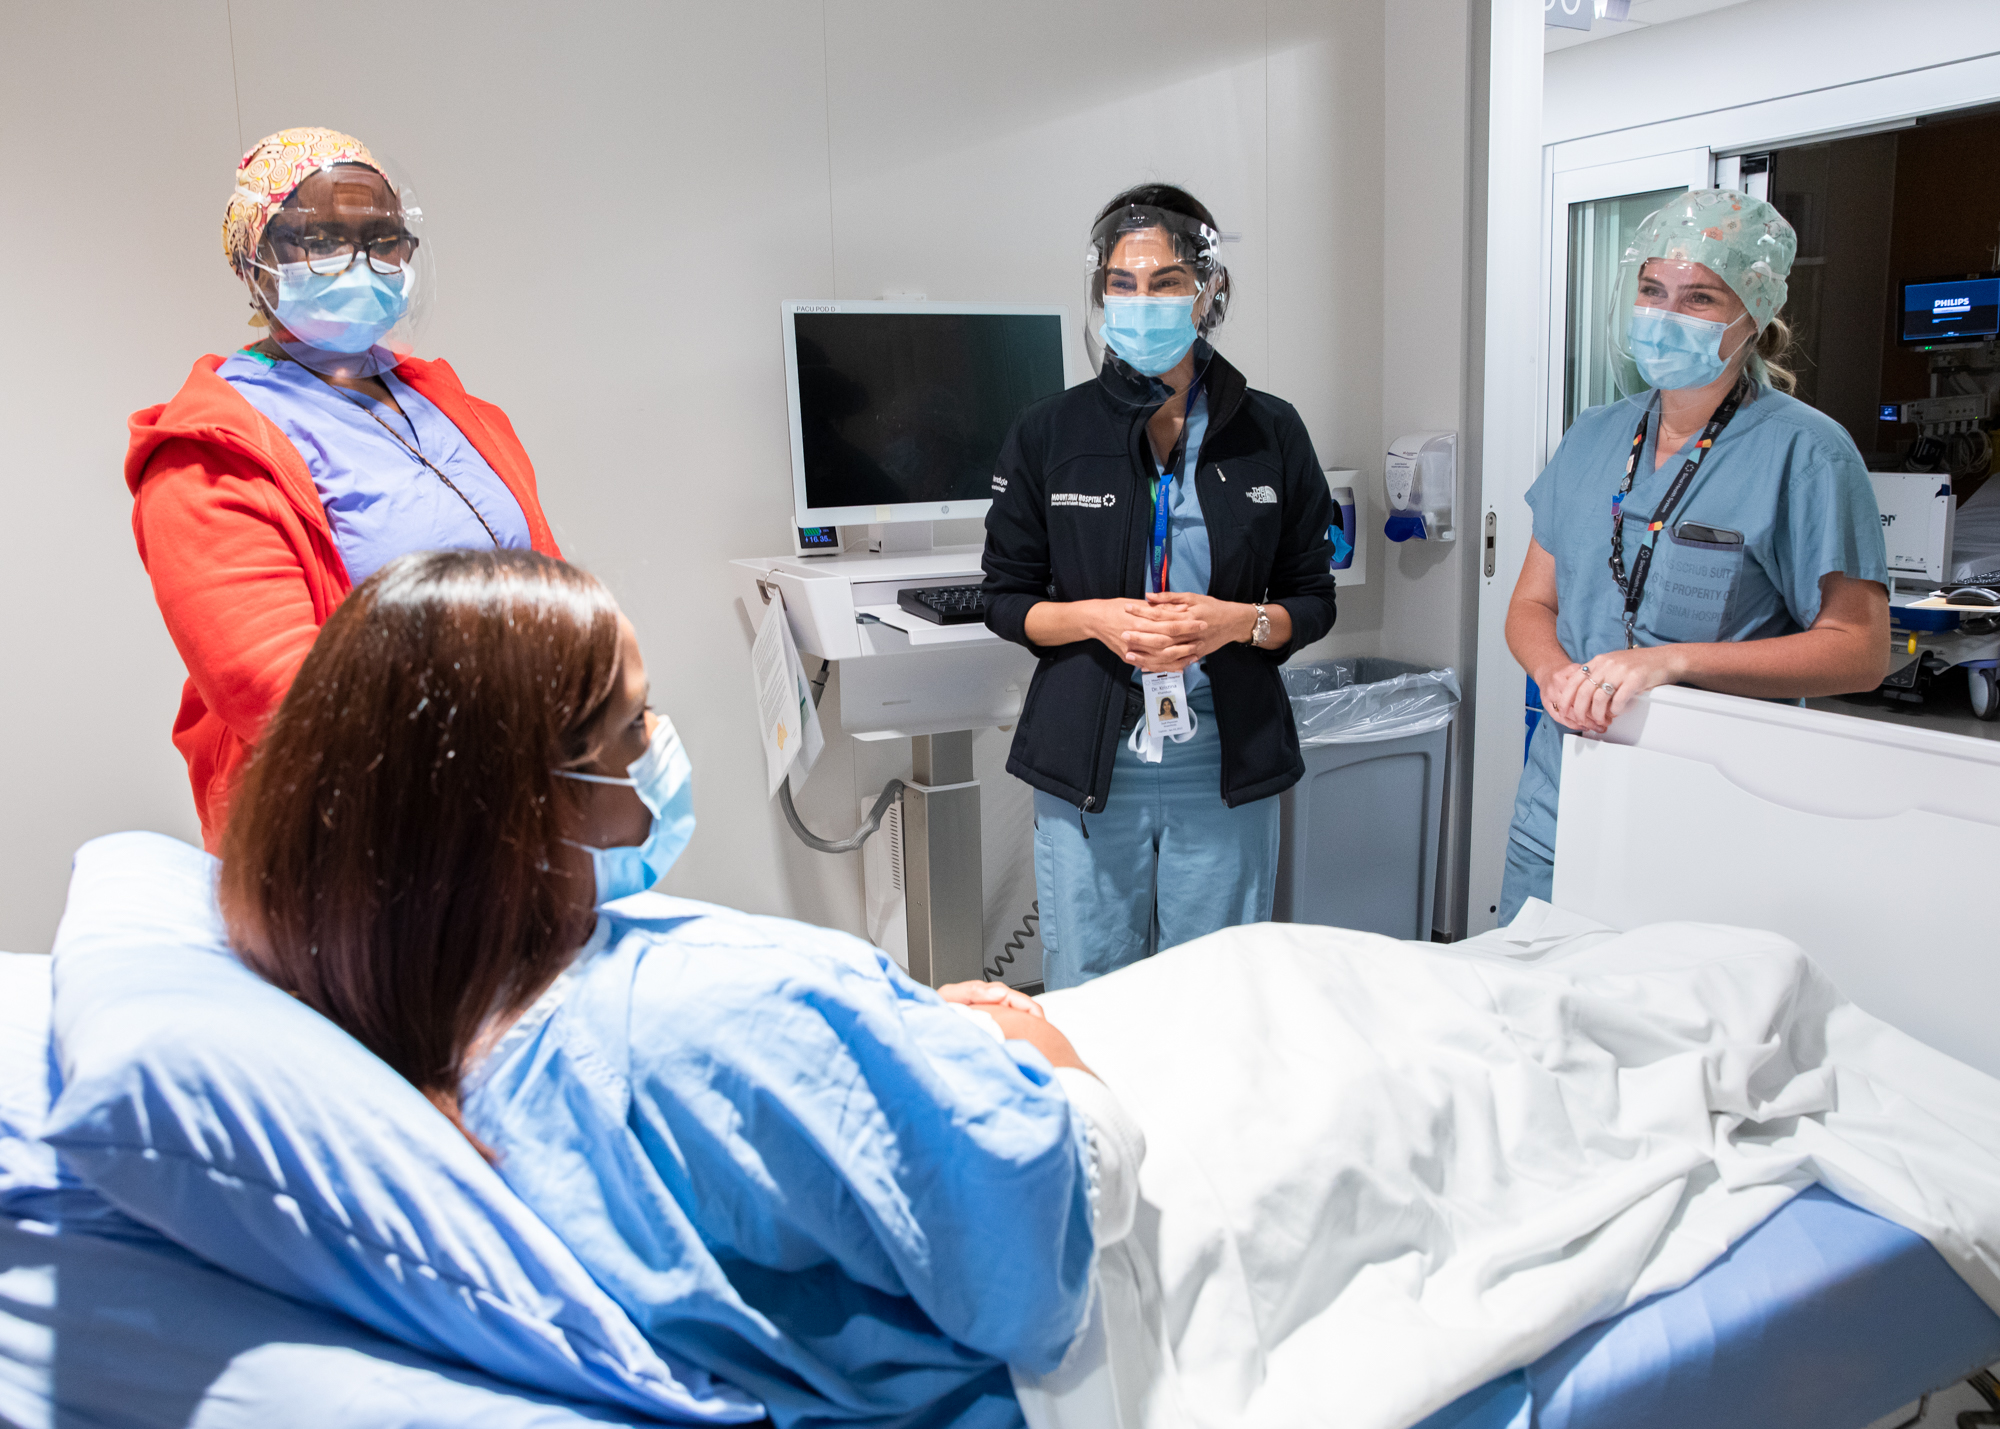 2 registered nurses (one as a mock patient), an anesthesiologist and a respiratory therapist plan a simulation exercise.